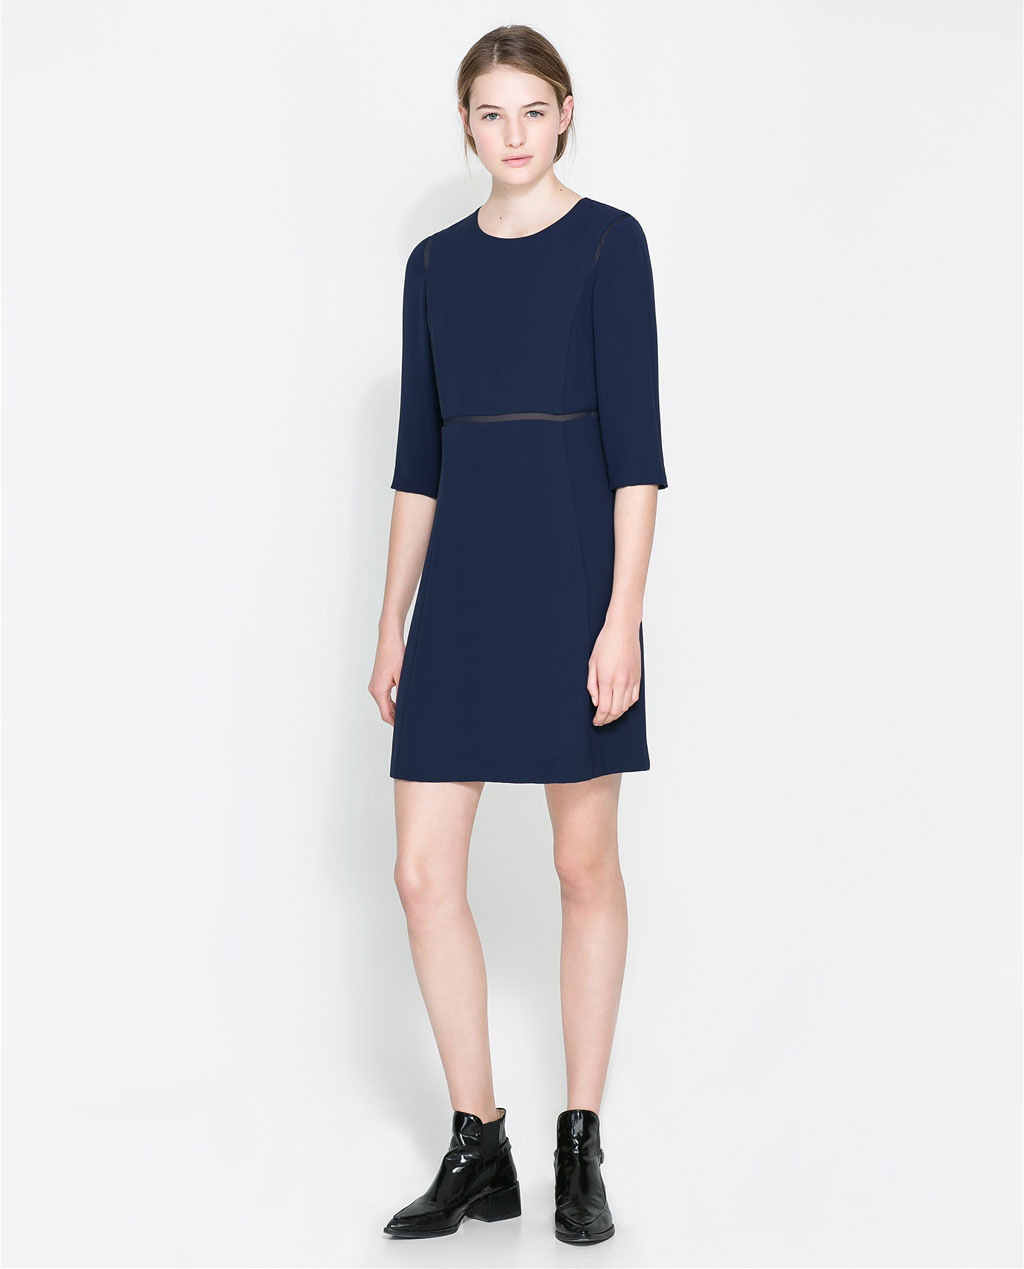 Dress With Organza Trim - style: shift; length: mid thigh; neckline: round neck; pattern: plain; predominant colour: navy; secondary colour: navy; occasions: casual, evening, work, occasion, creative work; fit: soft a-line; fibres: polyester/polyamide - 100%; sleeve length: 3/4 length; sleeve style: standard; texture group: crepes; pattern type: fabric; season: a/w 2013